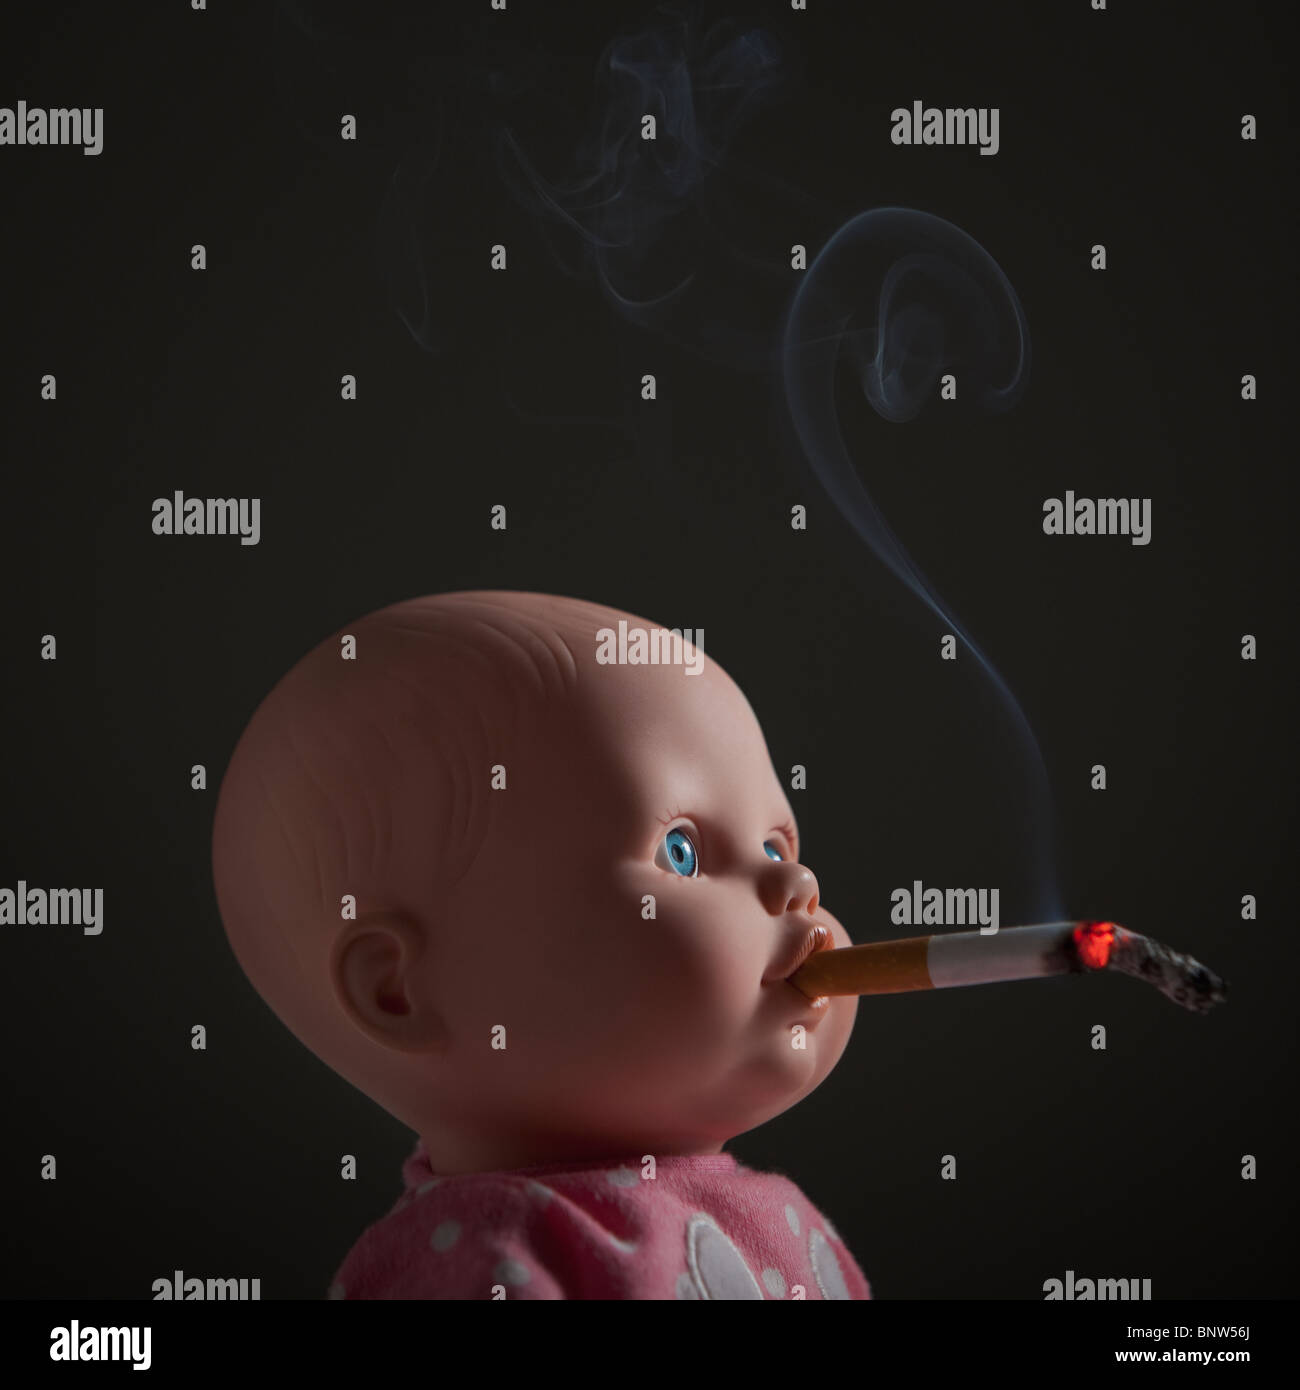 Cigarette in doll's mouth - Stock Image